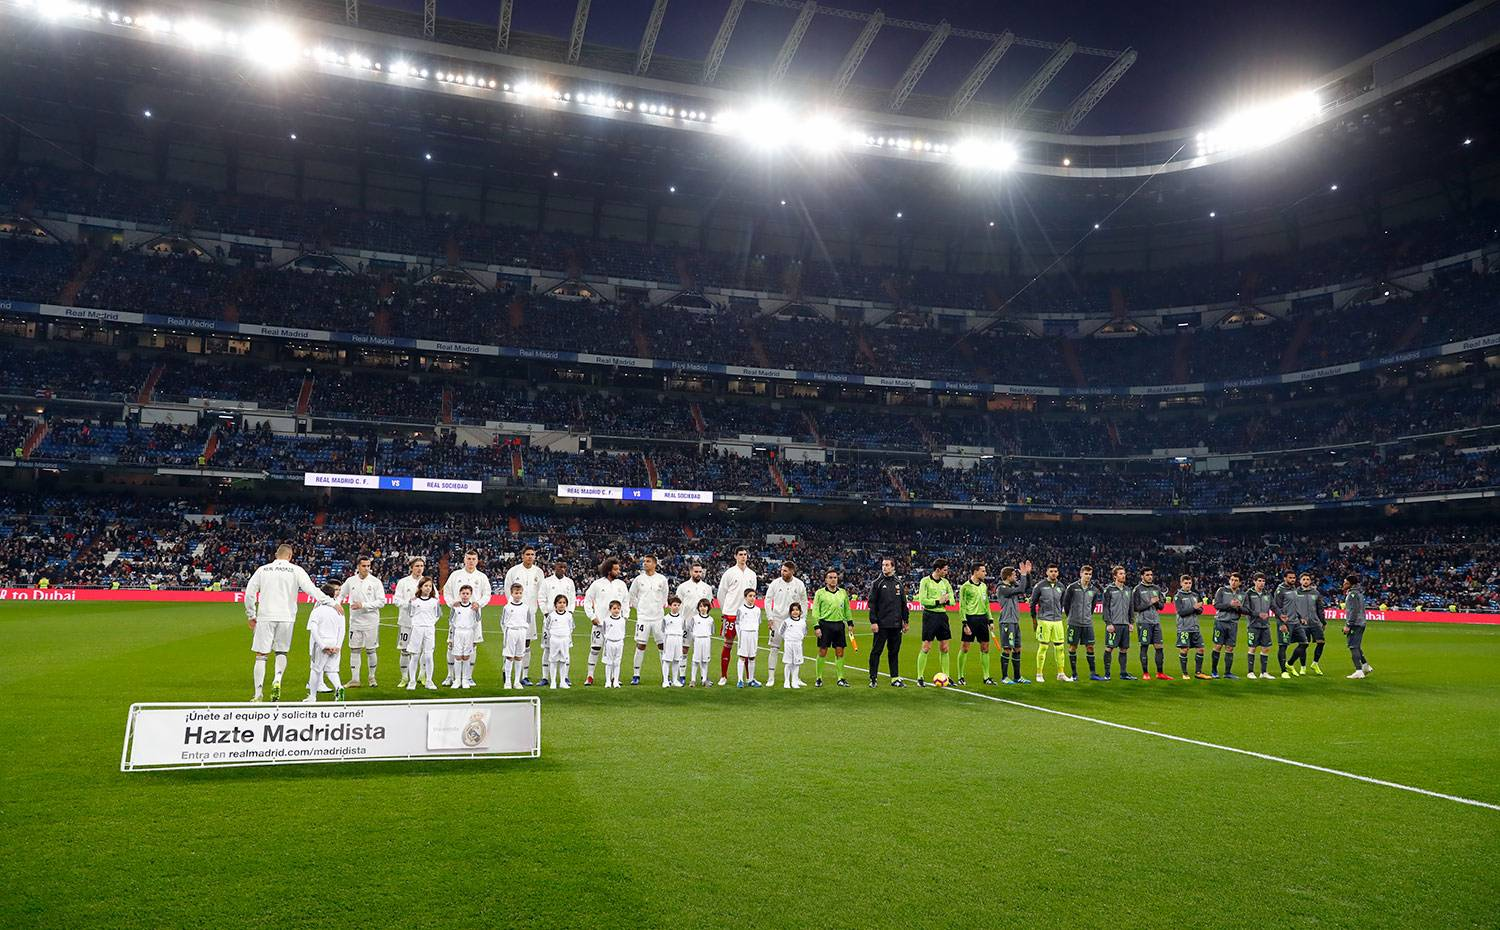 Real Madrid - Real Madrid - Real Sociedad - 06-01-2019